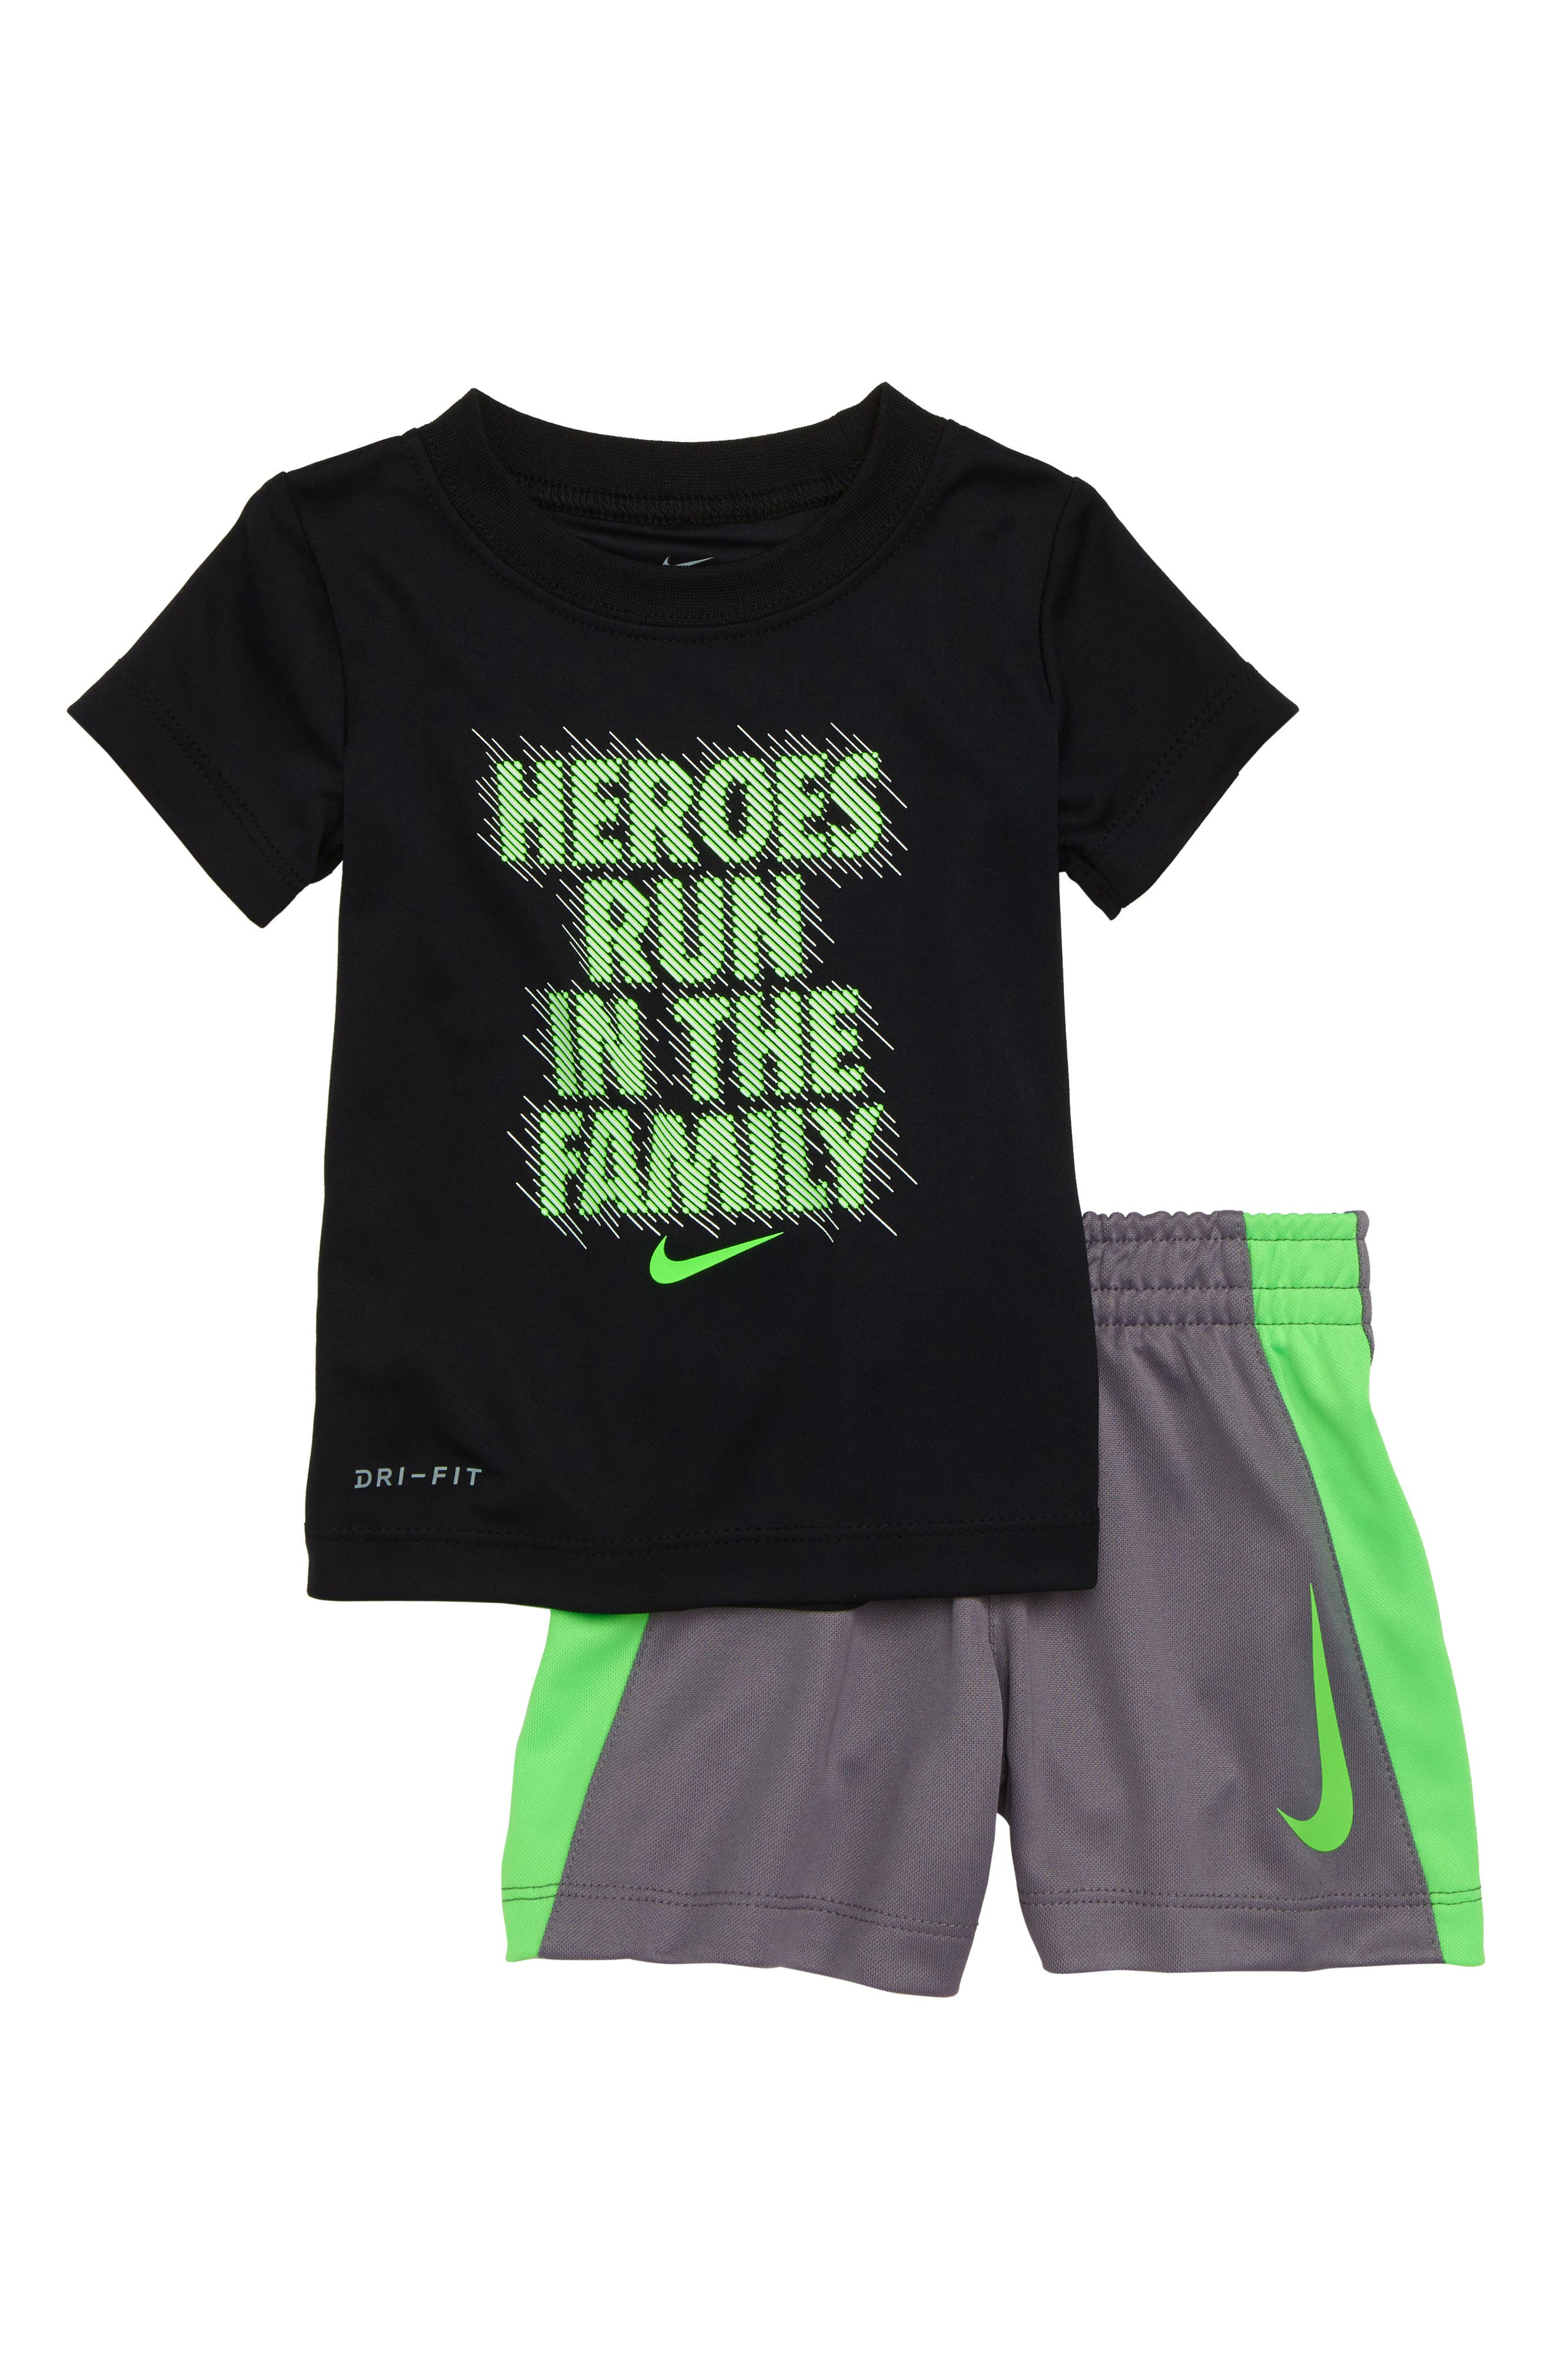 Dry Heroes Run in the Family Tee & Shorts Set,                             Main thumbnail 1, color,                             004